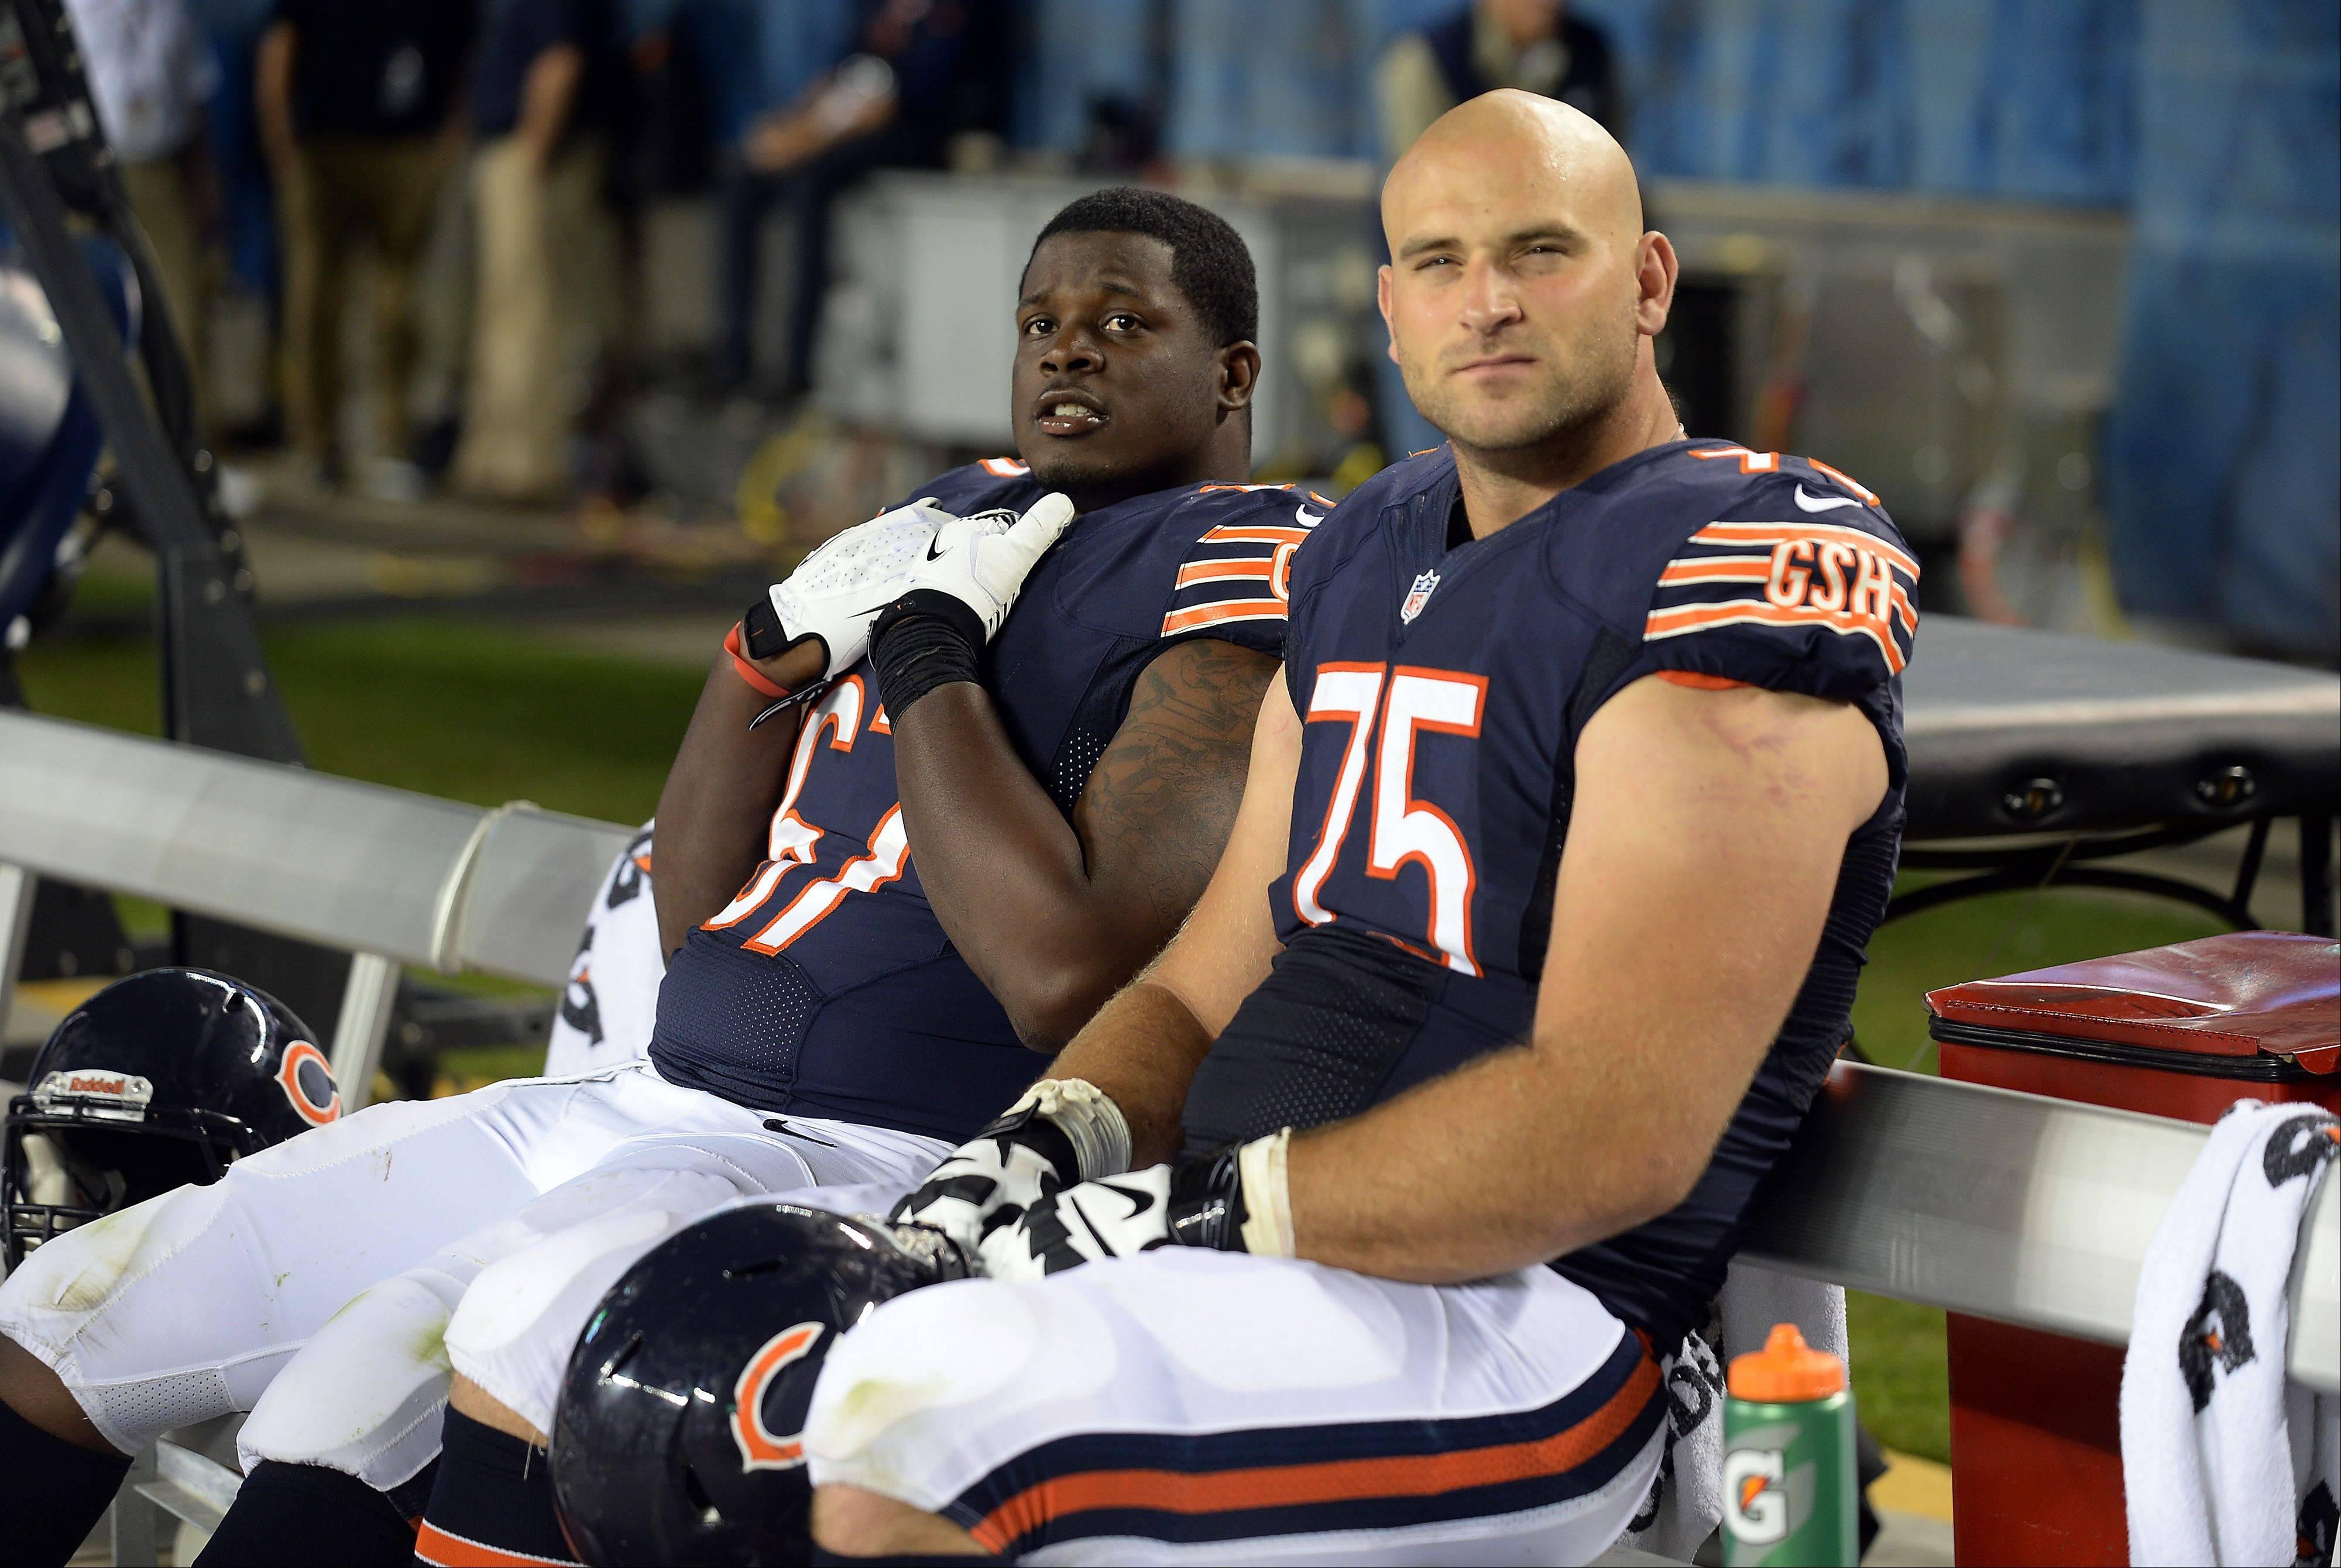 Bears rookie offensive linemen Kyle Long and Jordan Mills relax during the fourth quarter of Thursday's preseason victory over San Diego.